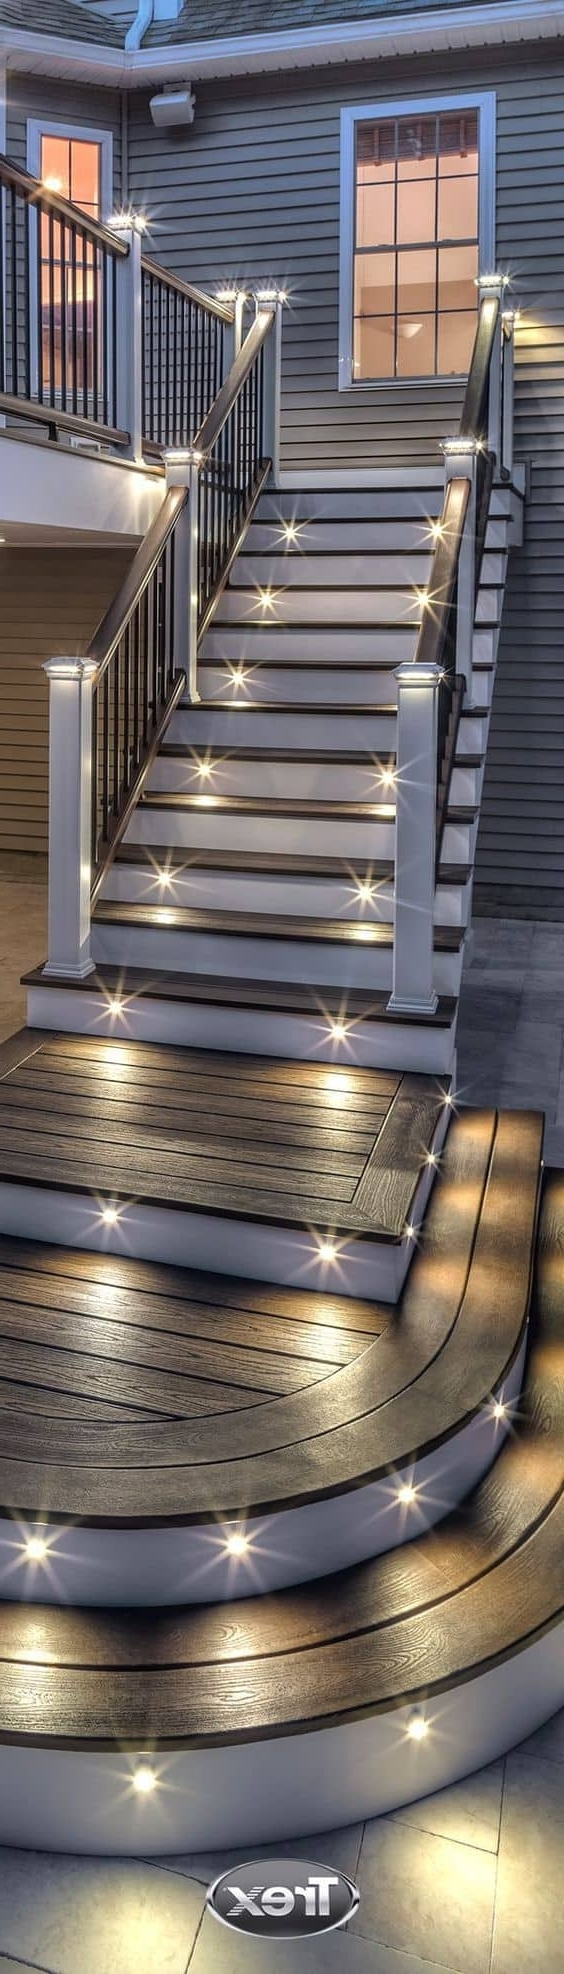 27 Outdoor Step Lighting Ideas That Will Amaze You With Regard To 2018 Contemporary Led Post Lights For Mini Garden (View 18 of 20)